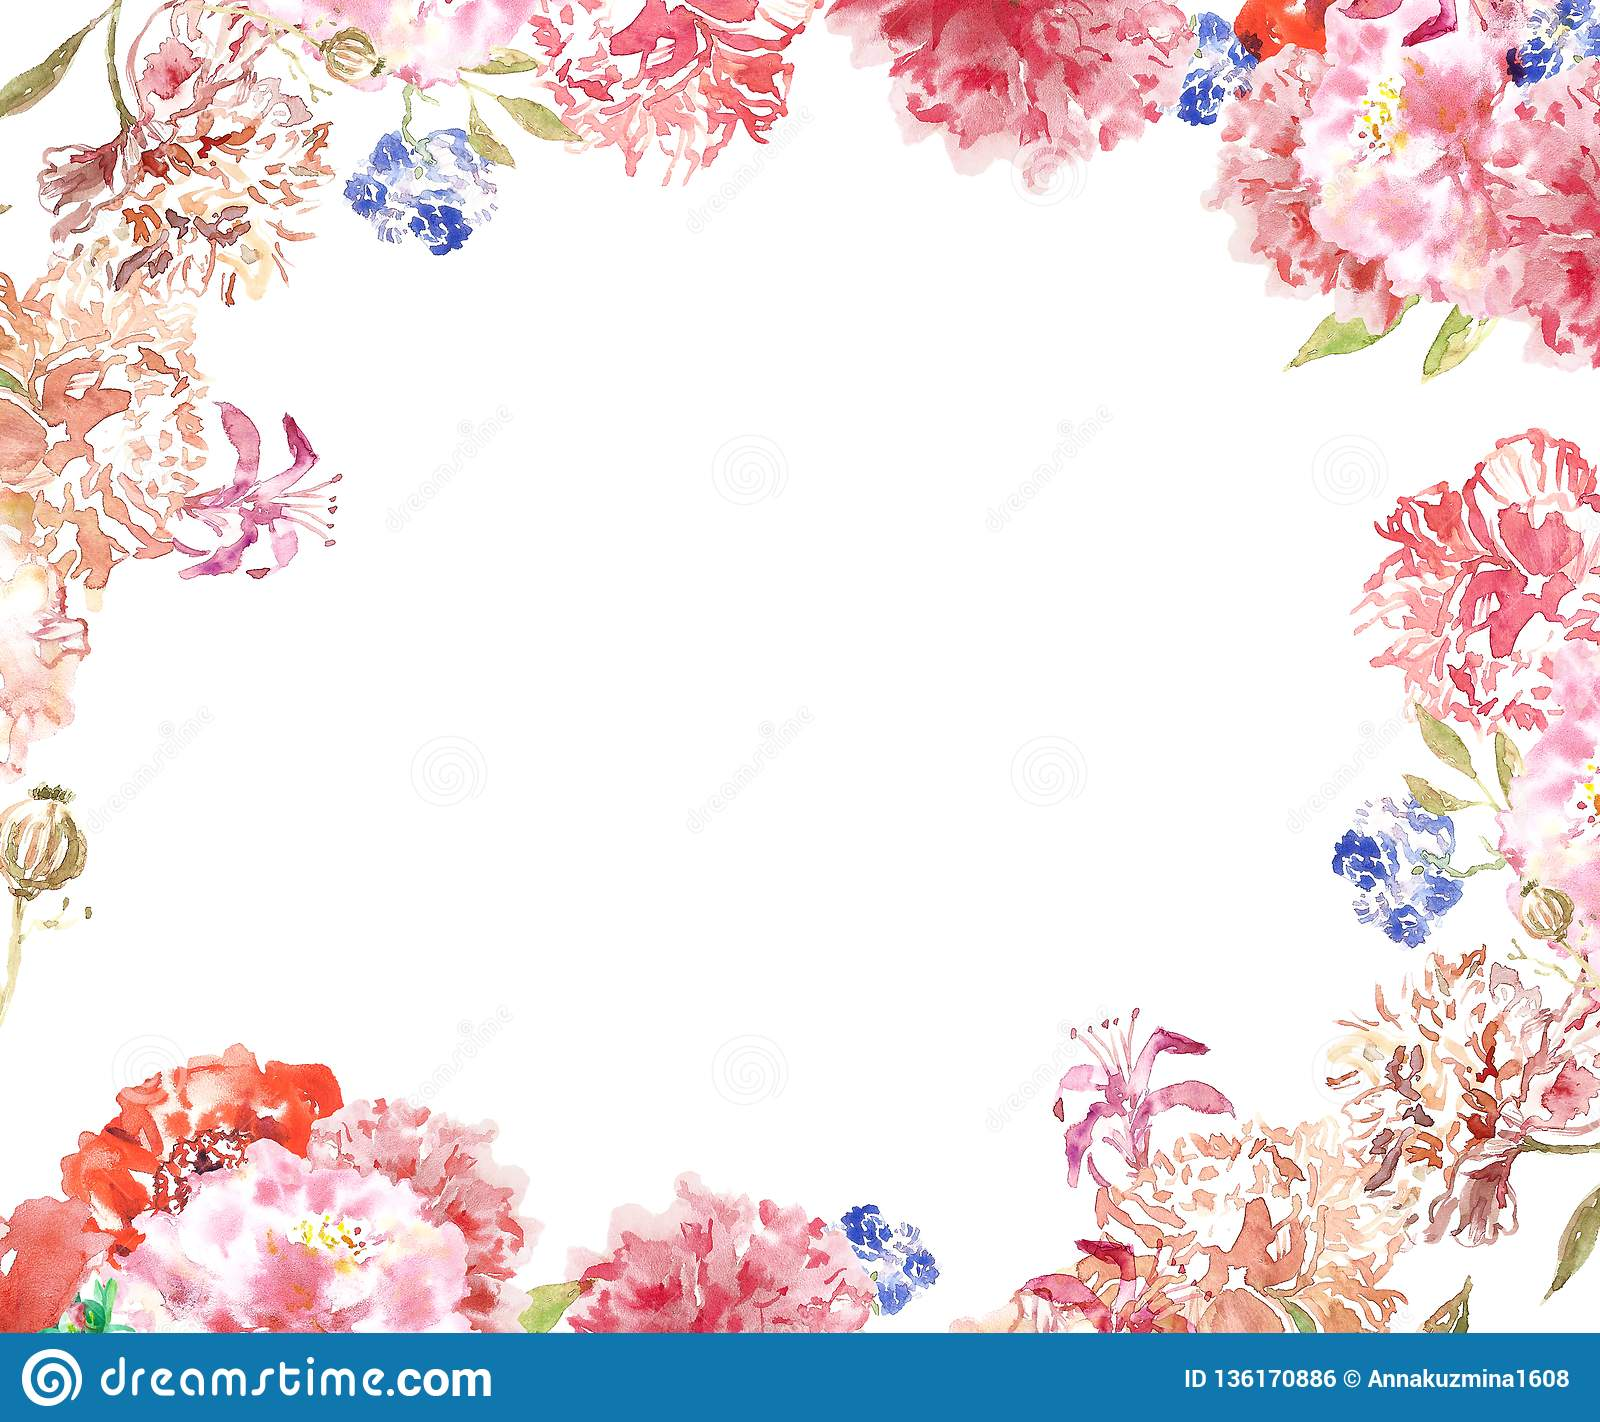 Watercolor Floral Frame Border With Delicate Pink And Beige Peony